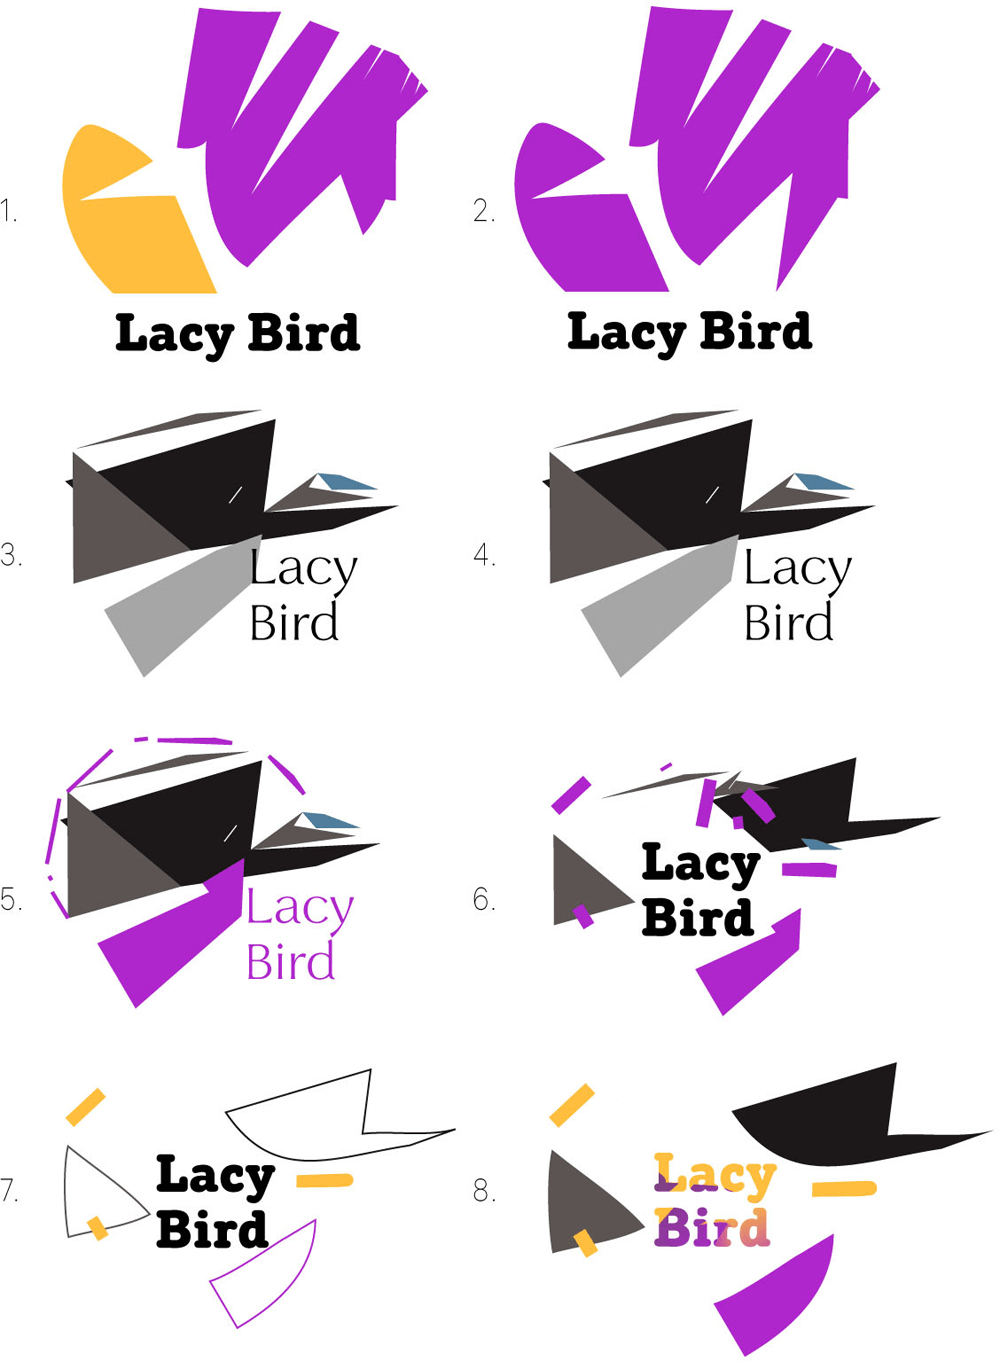 lacy bird process 09